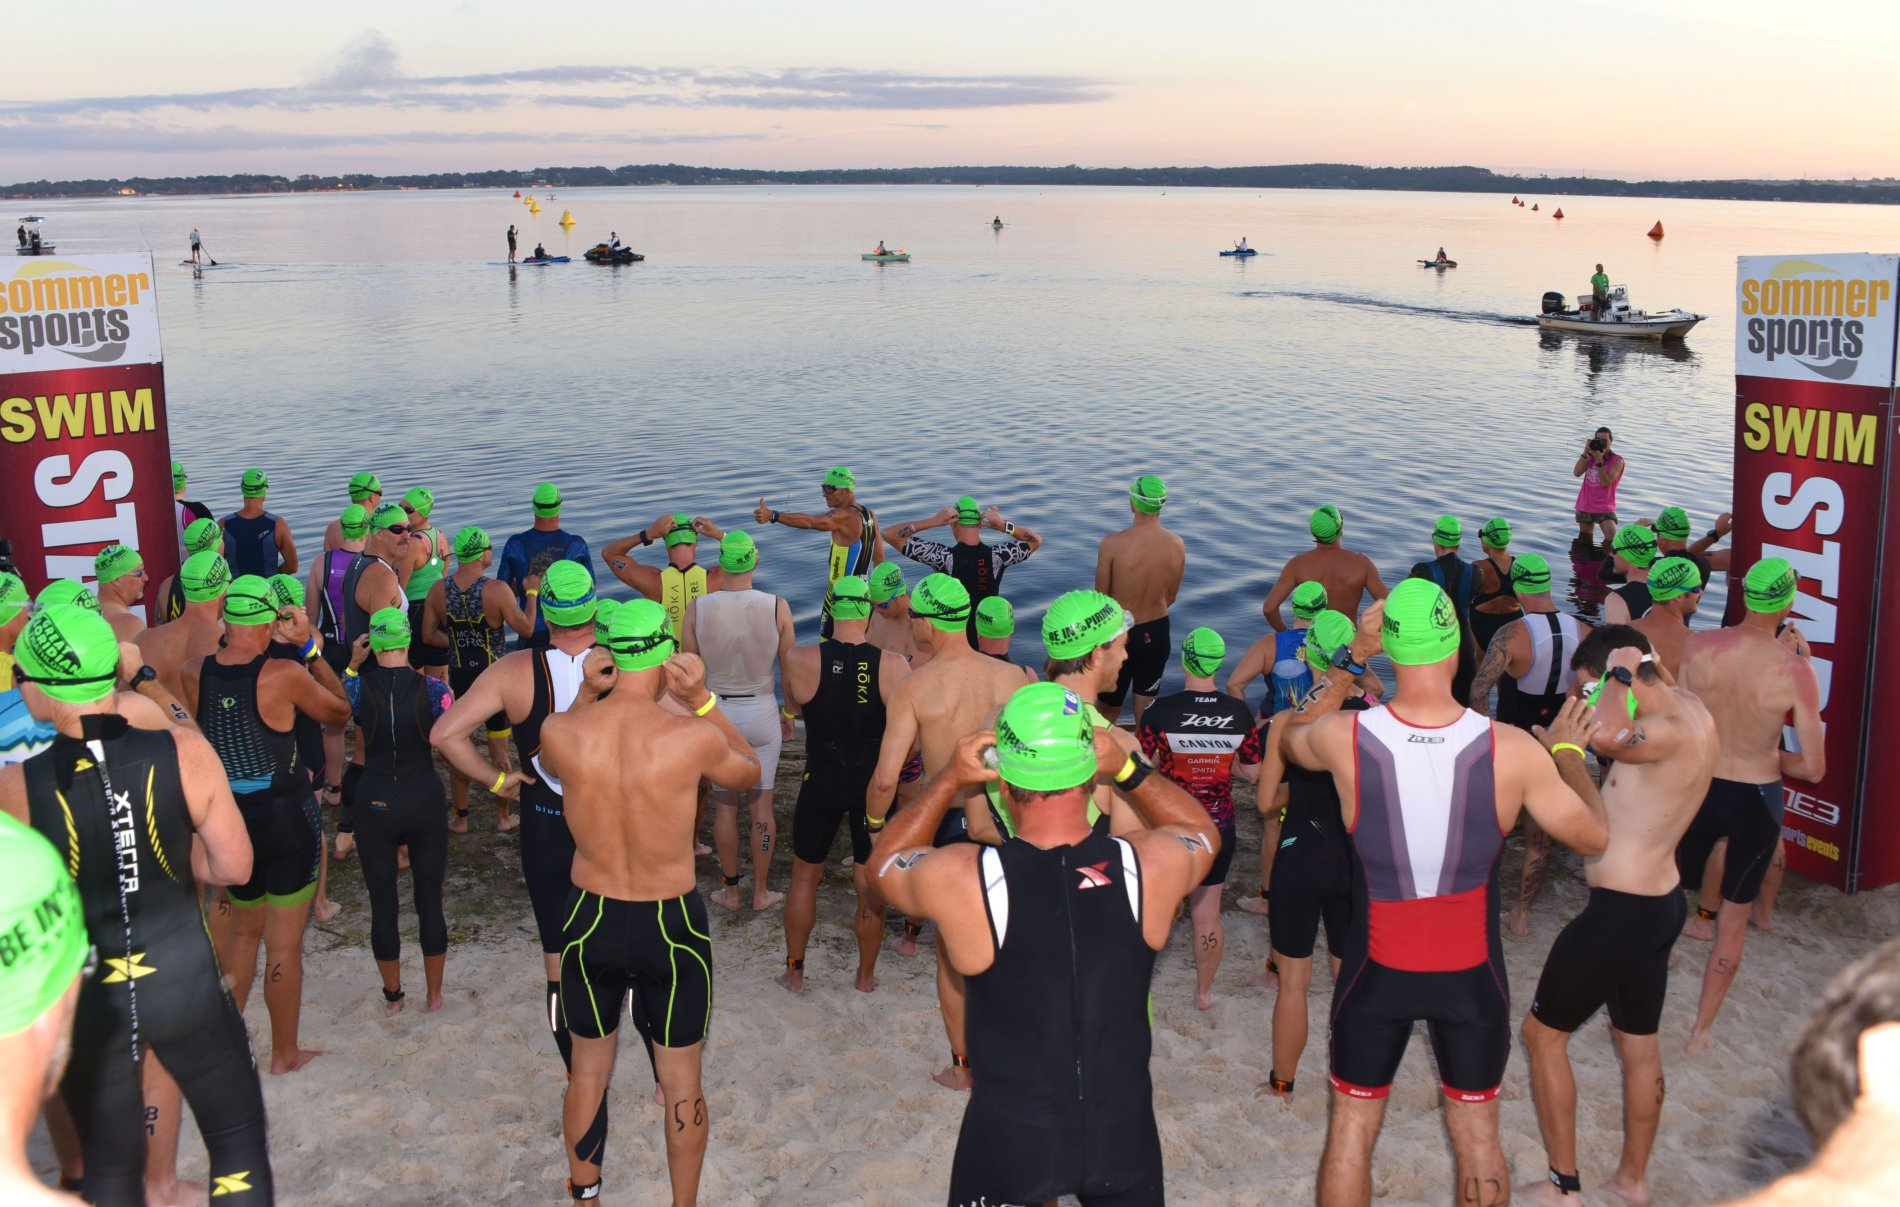 Athletes at start line of a triathlon swim portion of event getting ready to enter a lake.